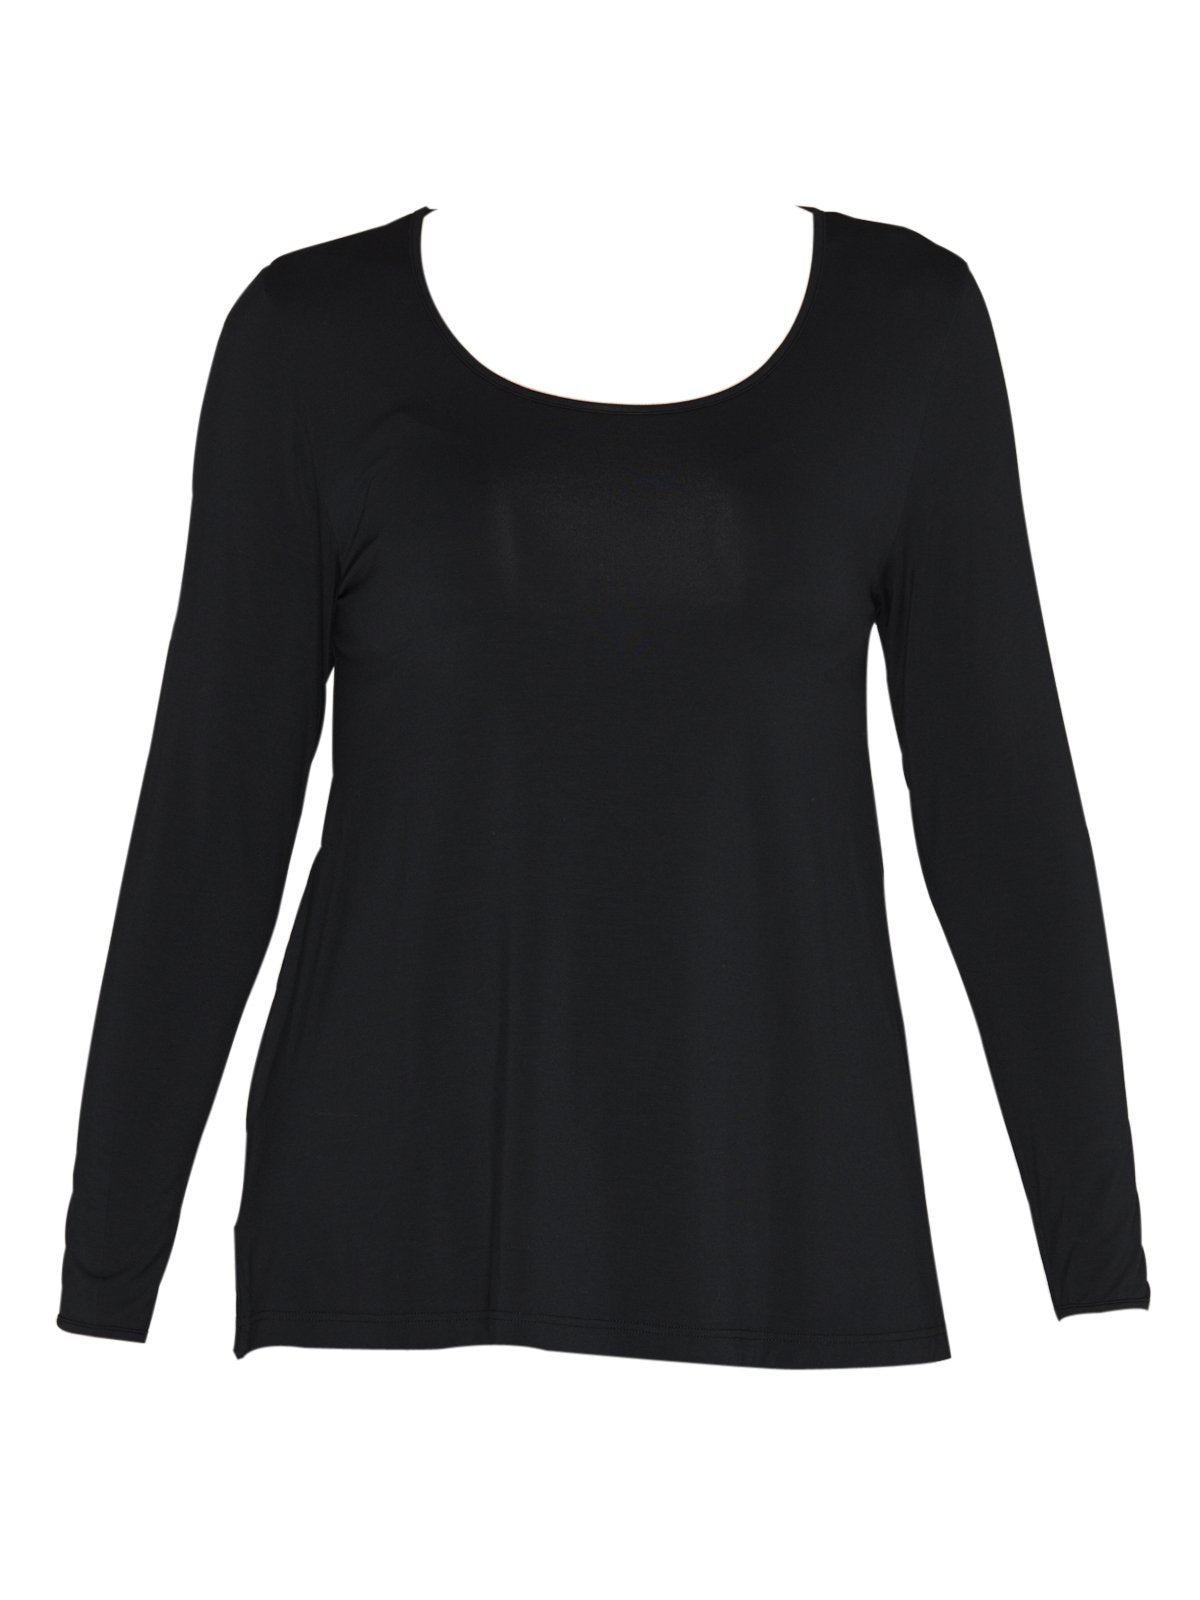 Long Sleeve Swing Top in Black